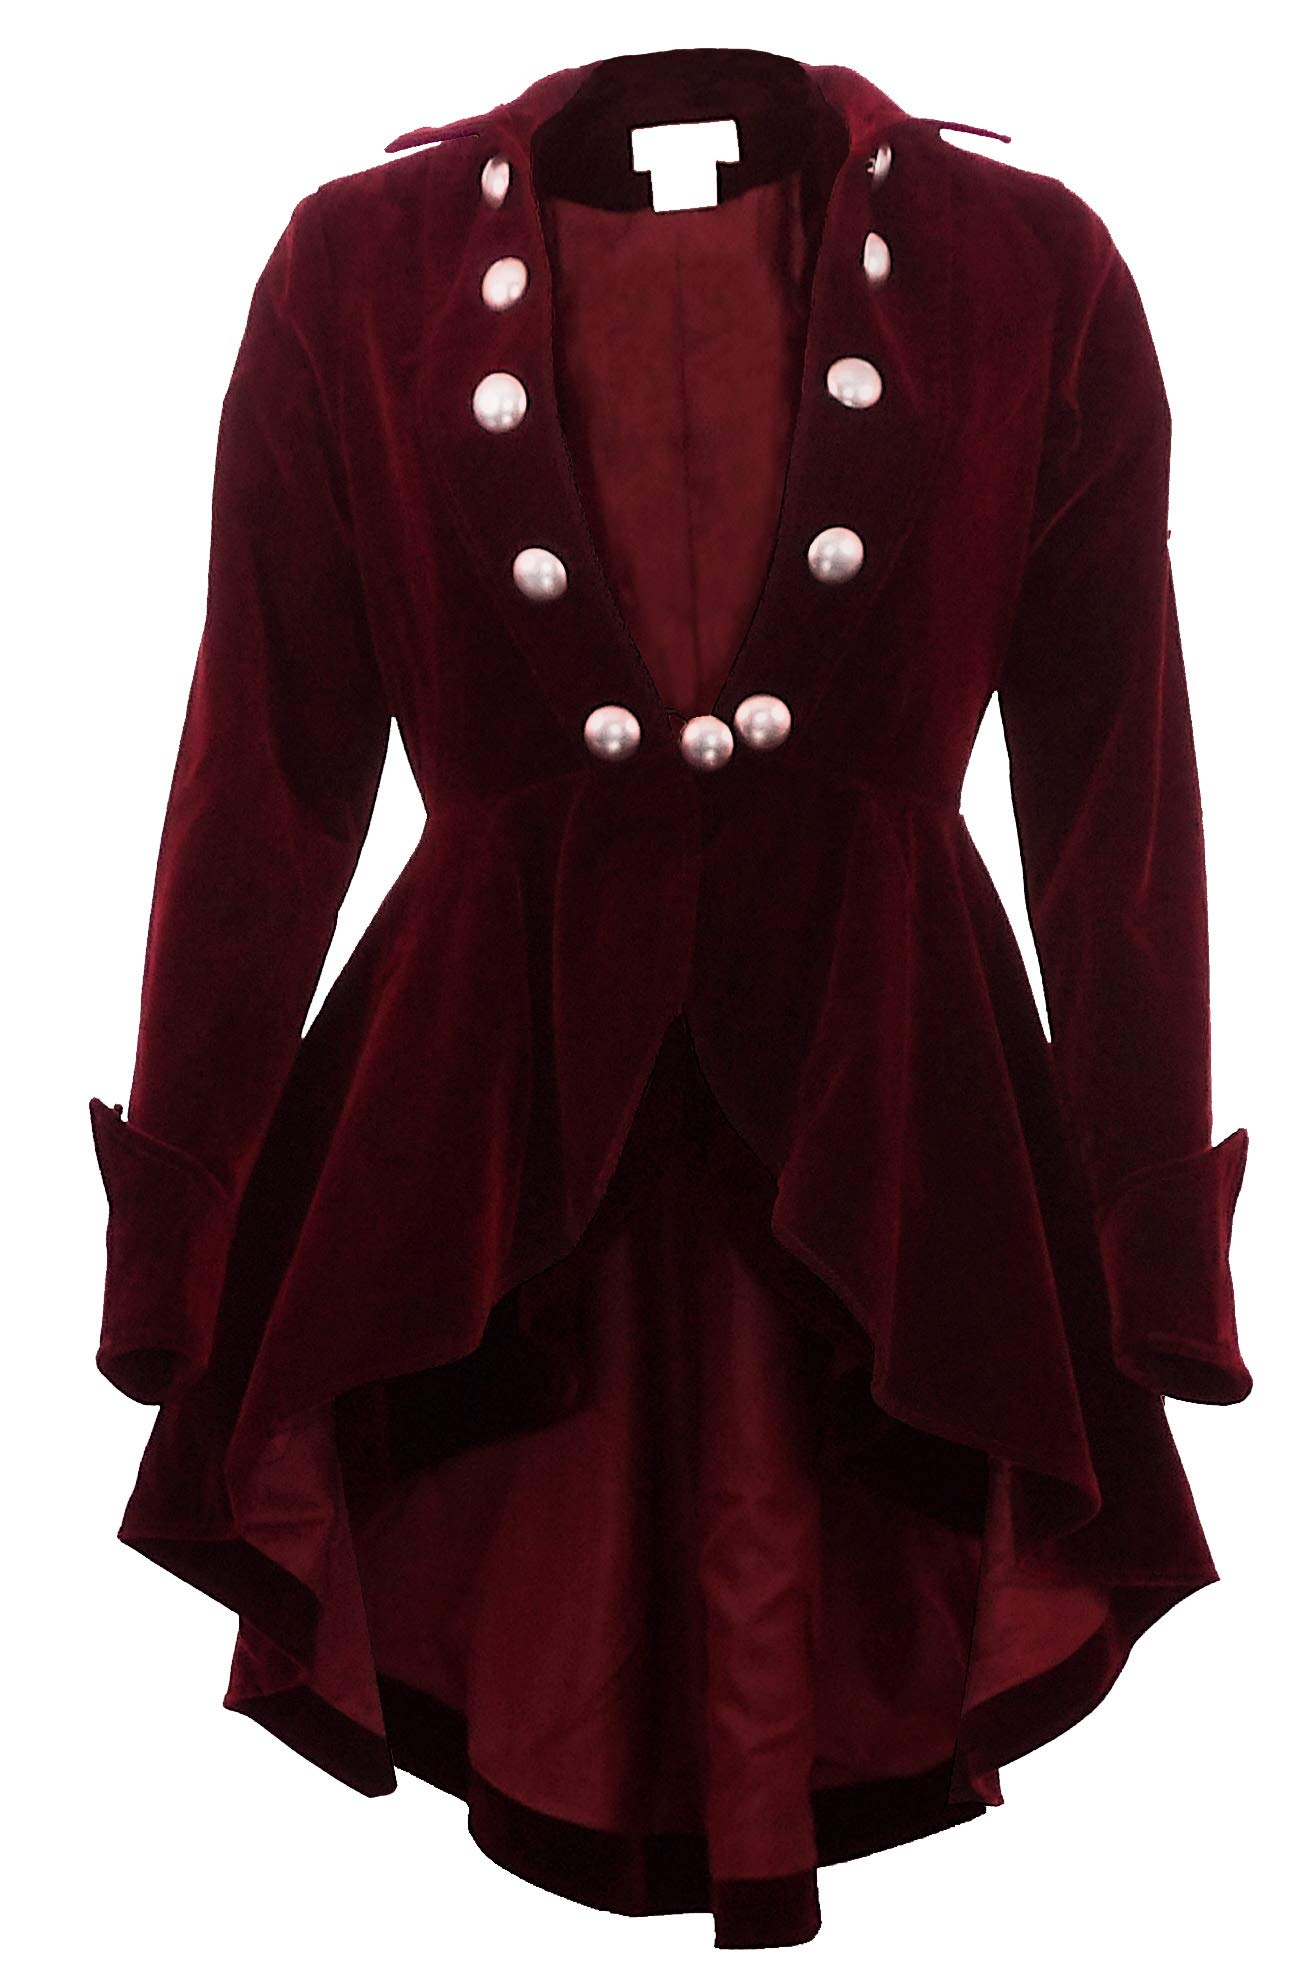 (XS-28) Velvet Wine Waterfall - PRIME - Maroon Red Gothic Ruffle Victorian Style Coat Jacket (Large, Red)